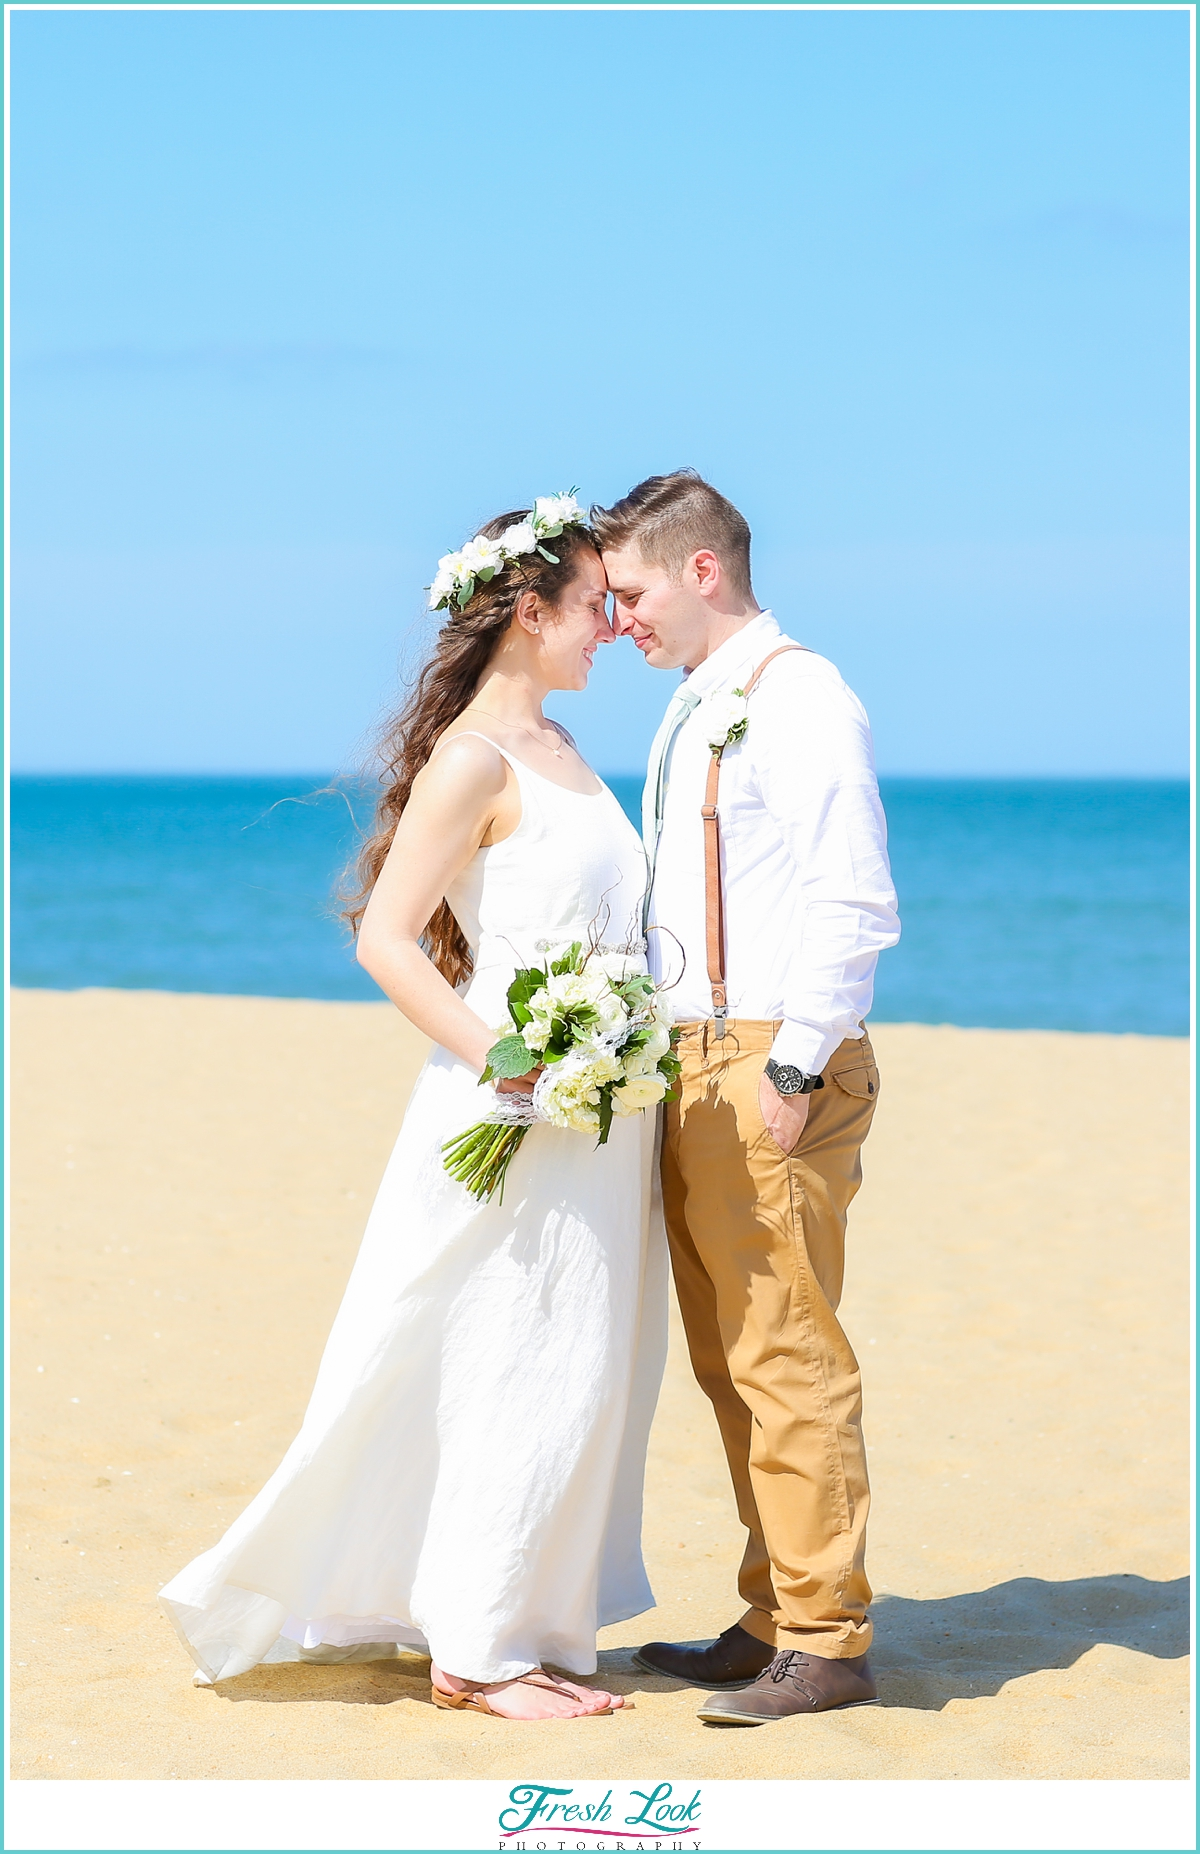 bride and groom on beach photoshoot